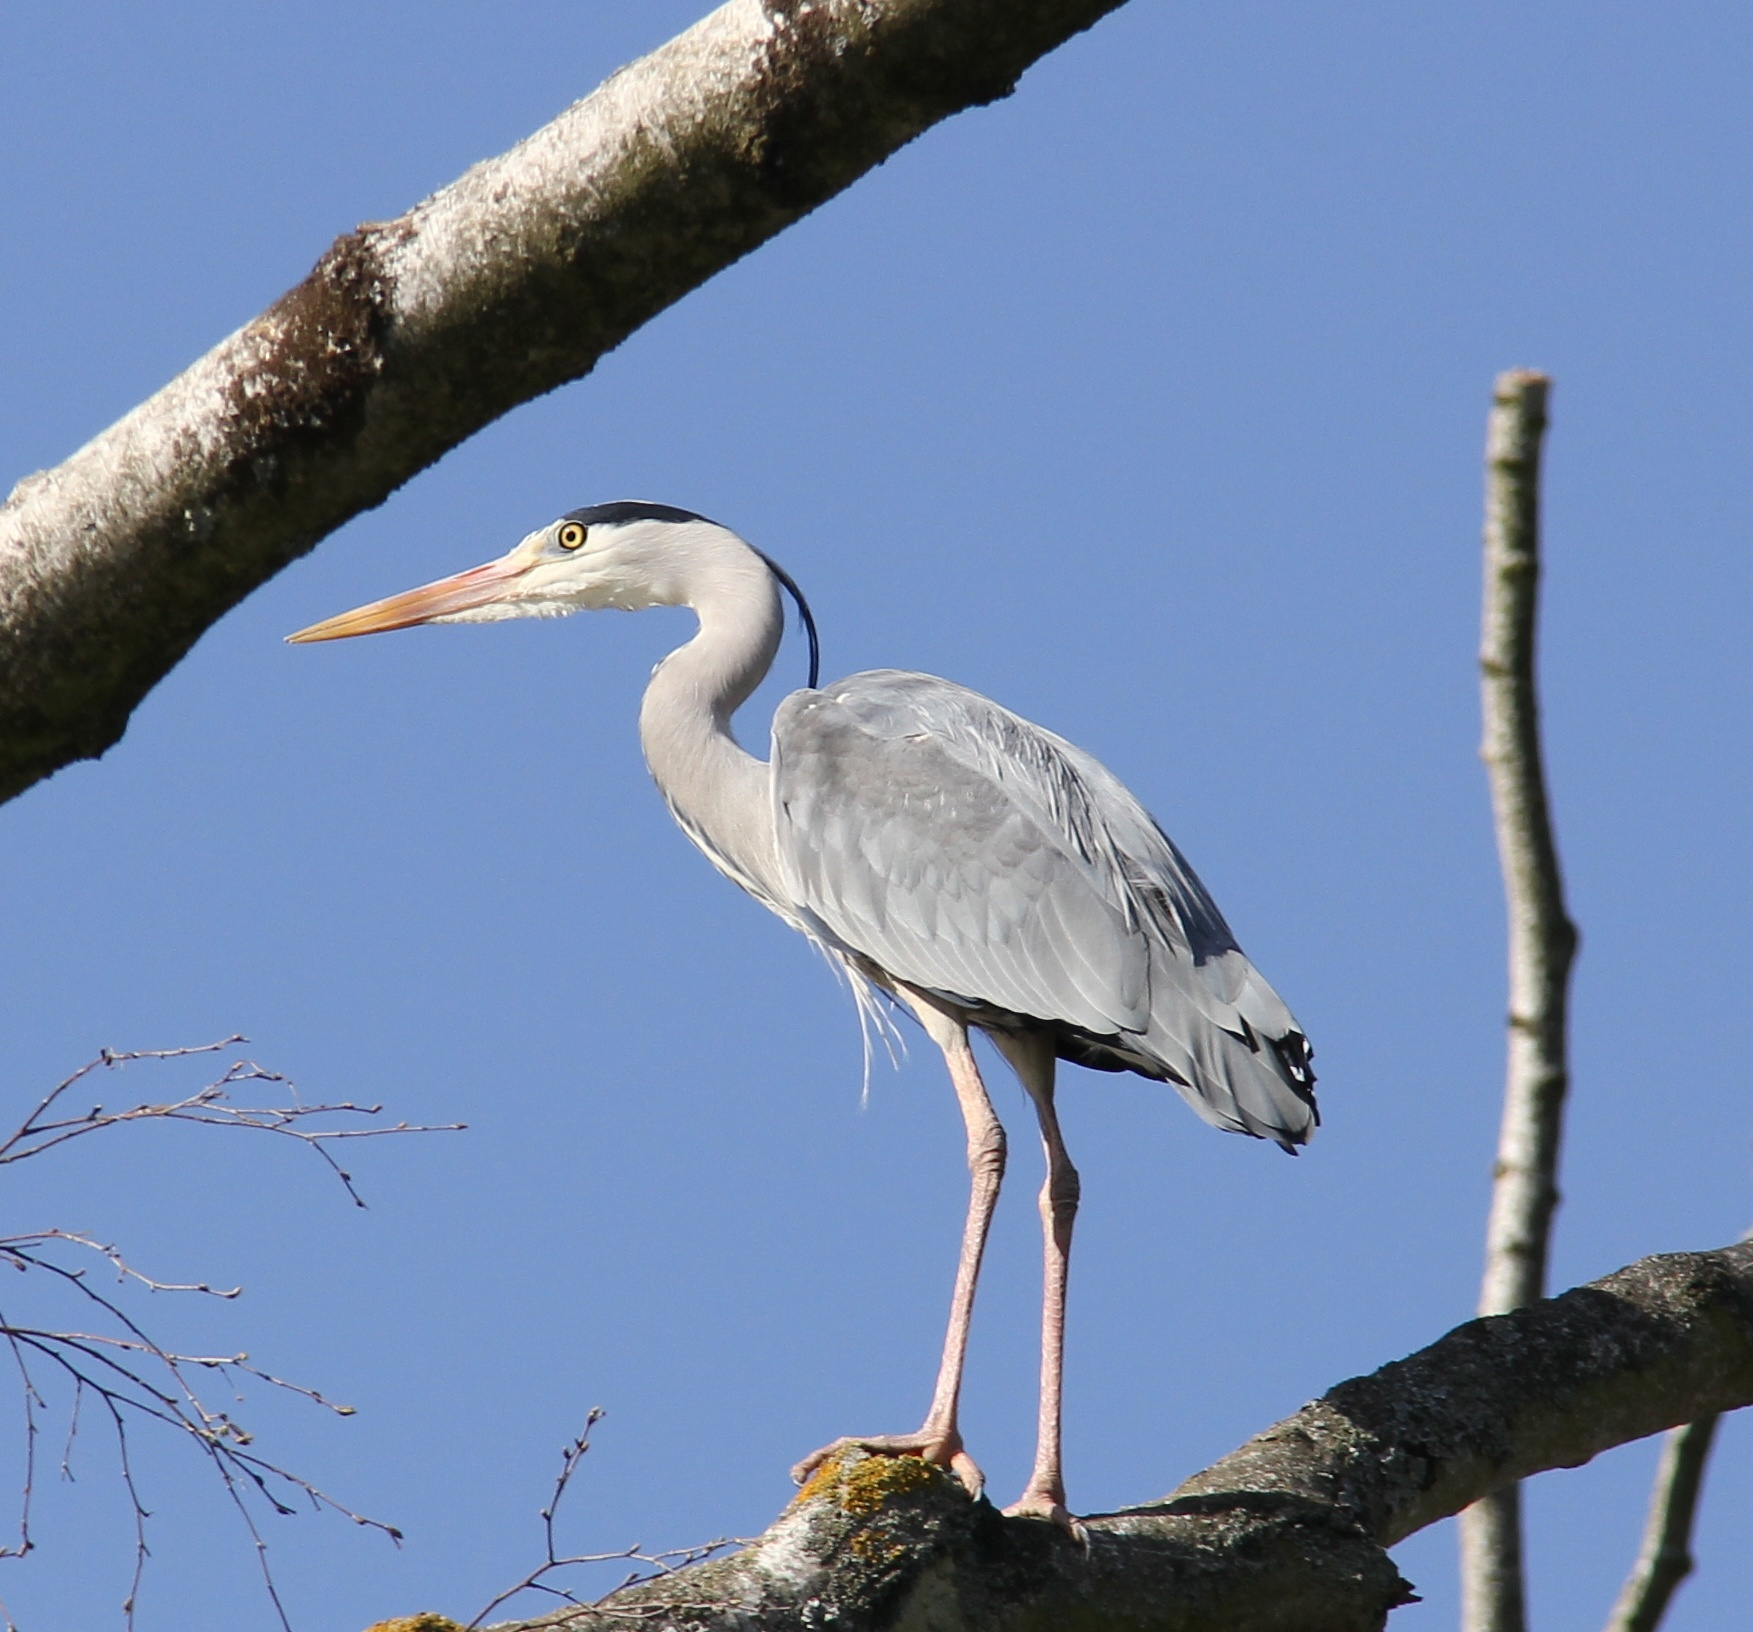 Heron in a Tree by Ollie Smith